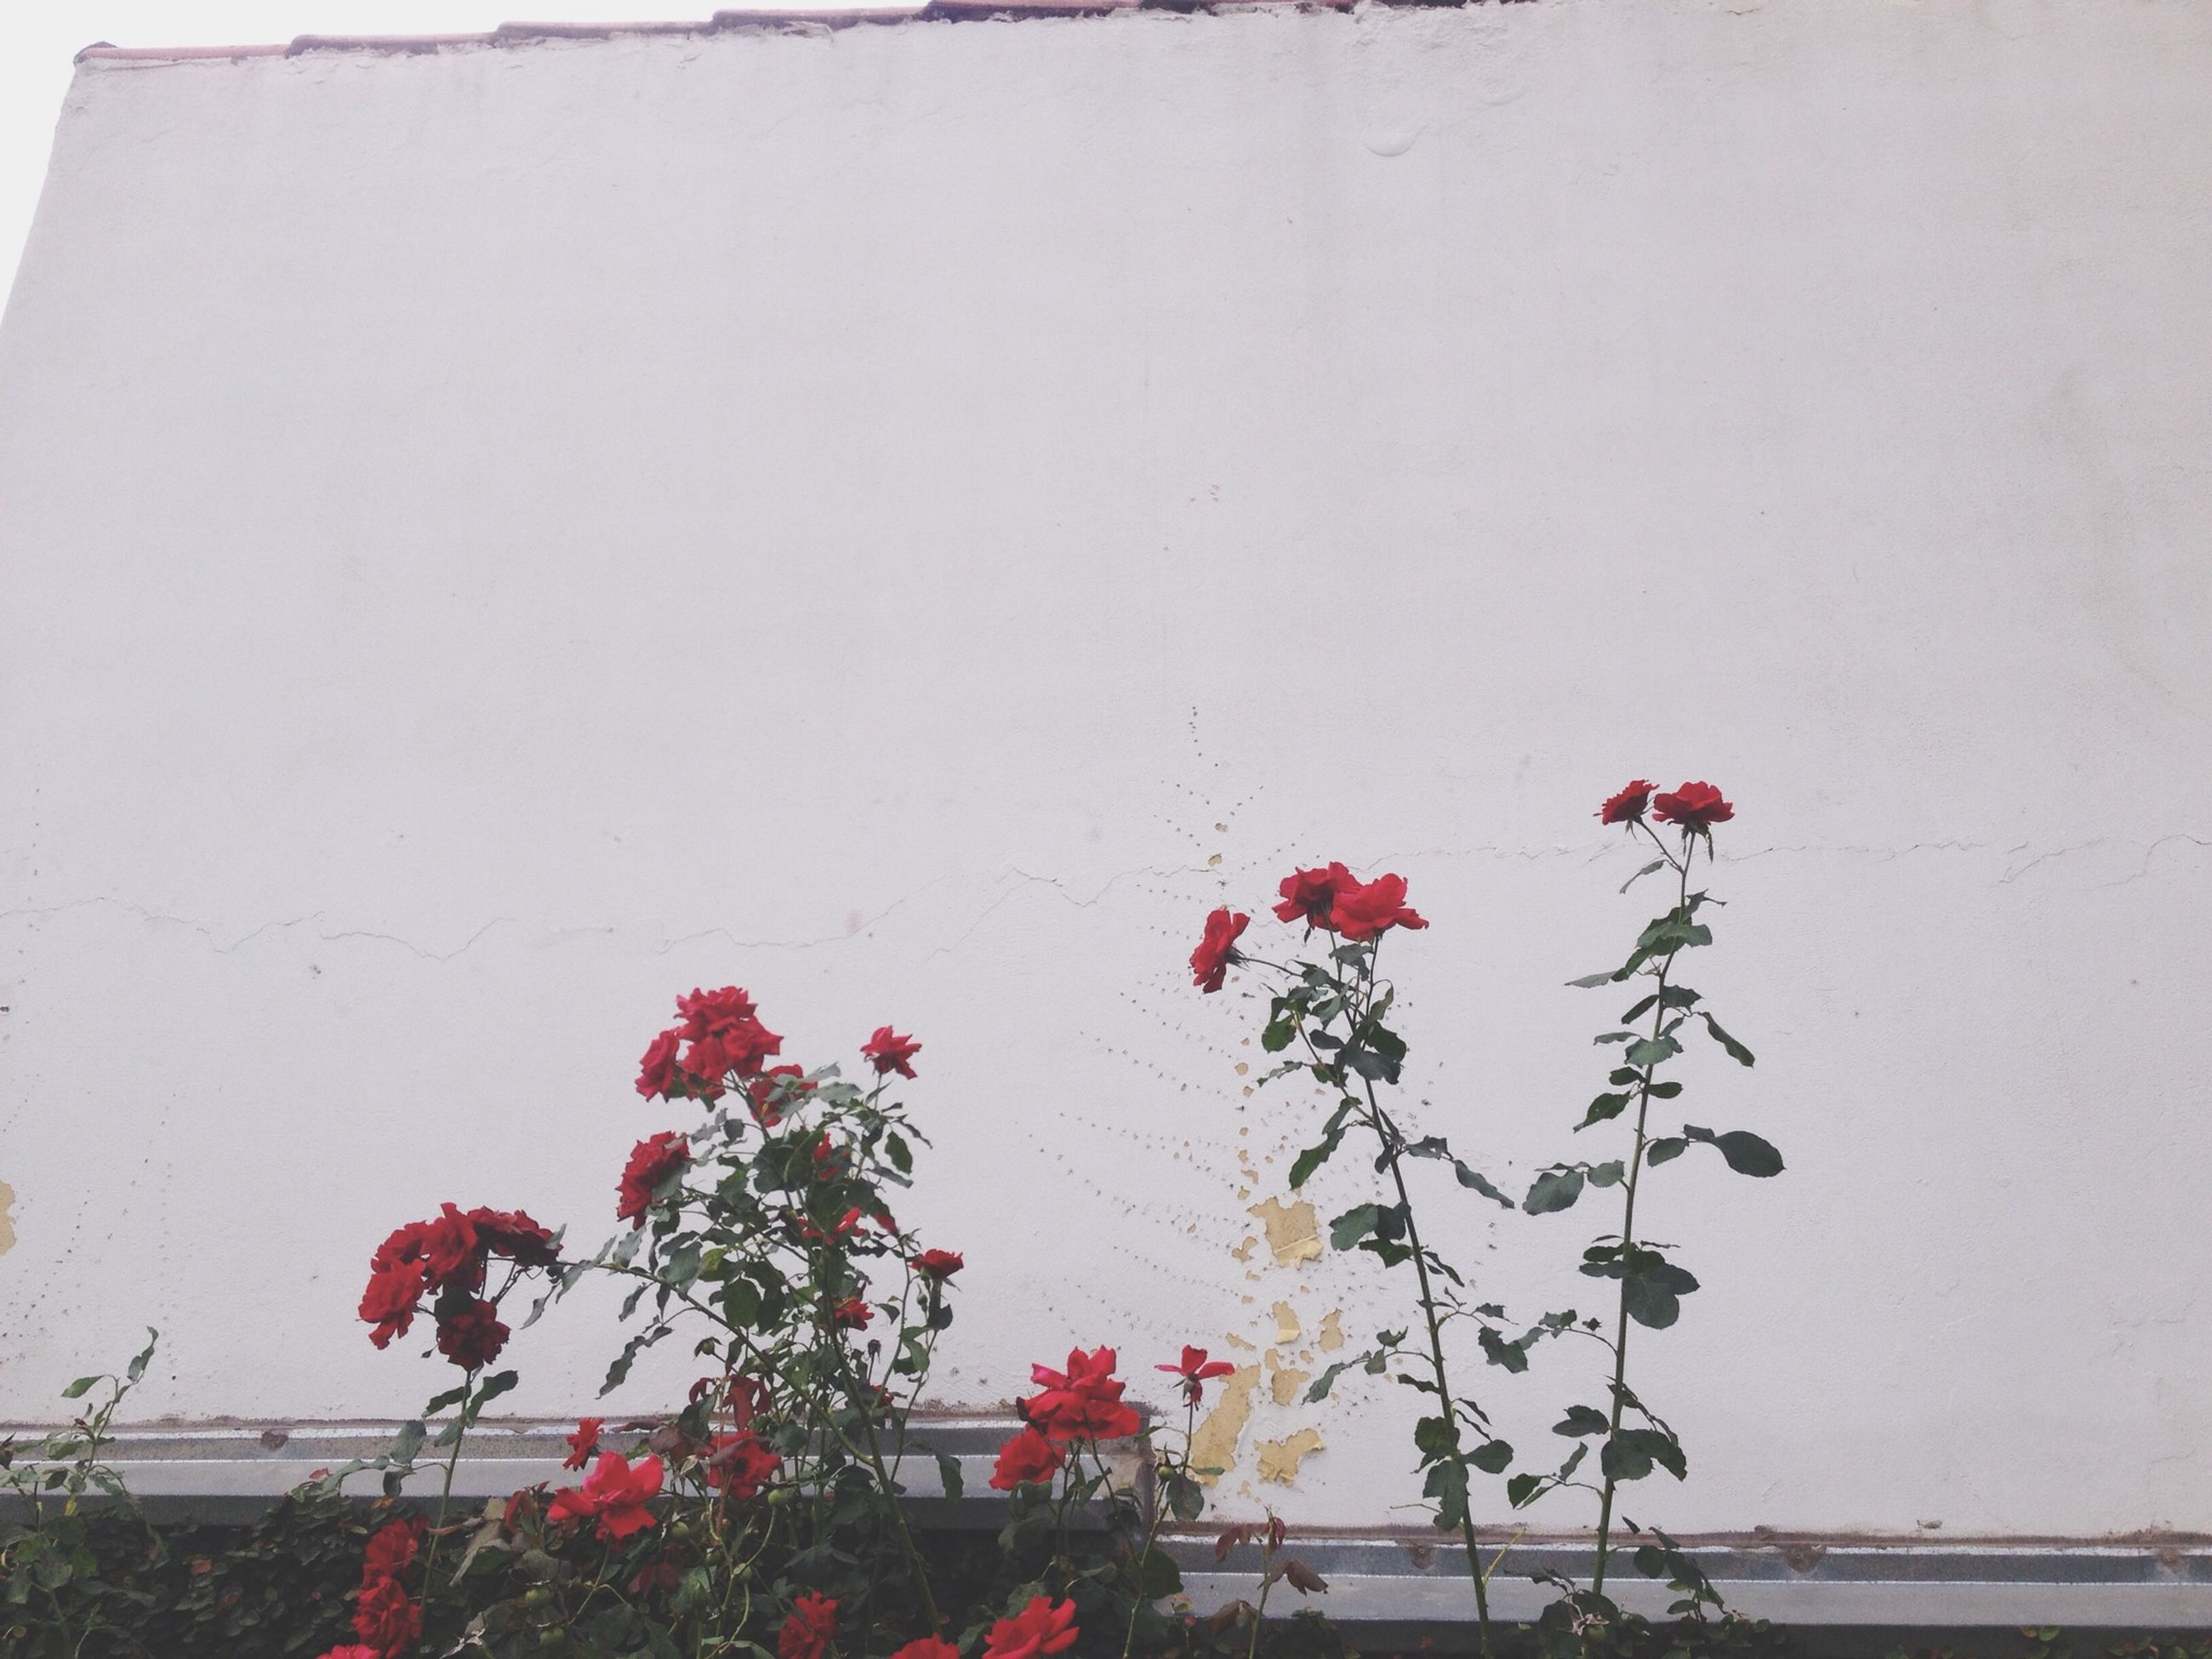 flower, red, wall - building feature, growth, plant, freshness, built structure, nature, fragility, architecture, building exterior, day, clear sky, no people, stem, beauty in nature, pink color, outdoors, wall, branch